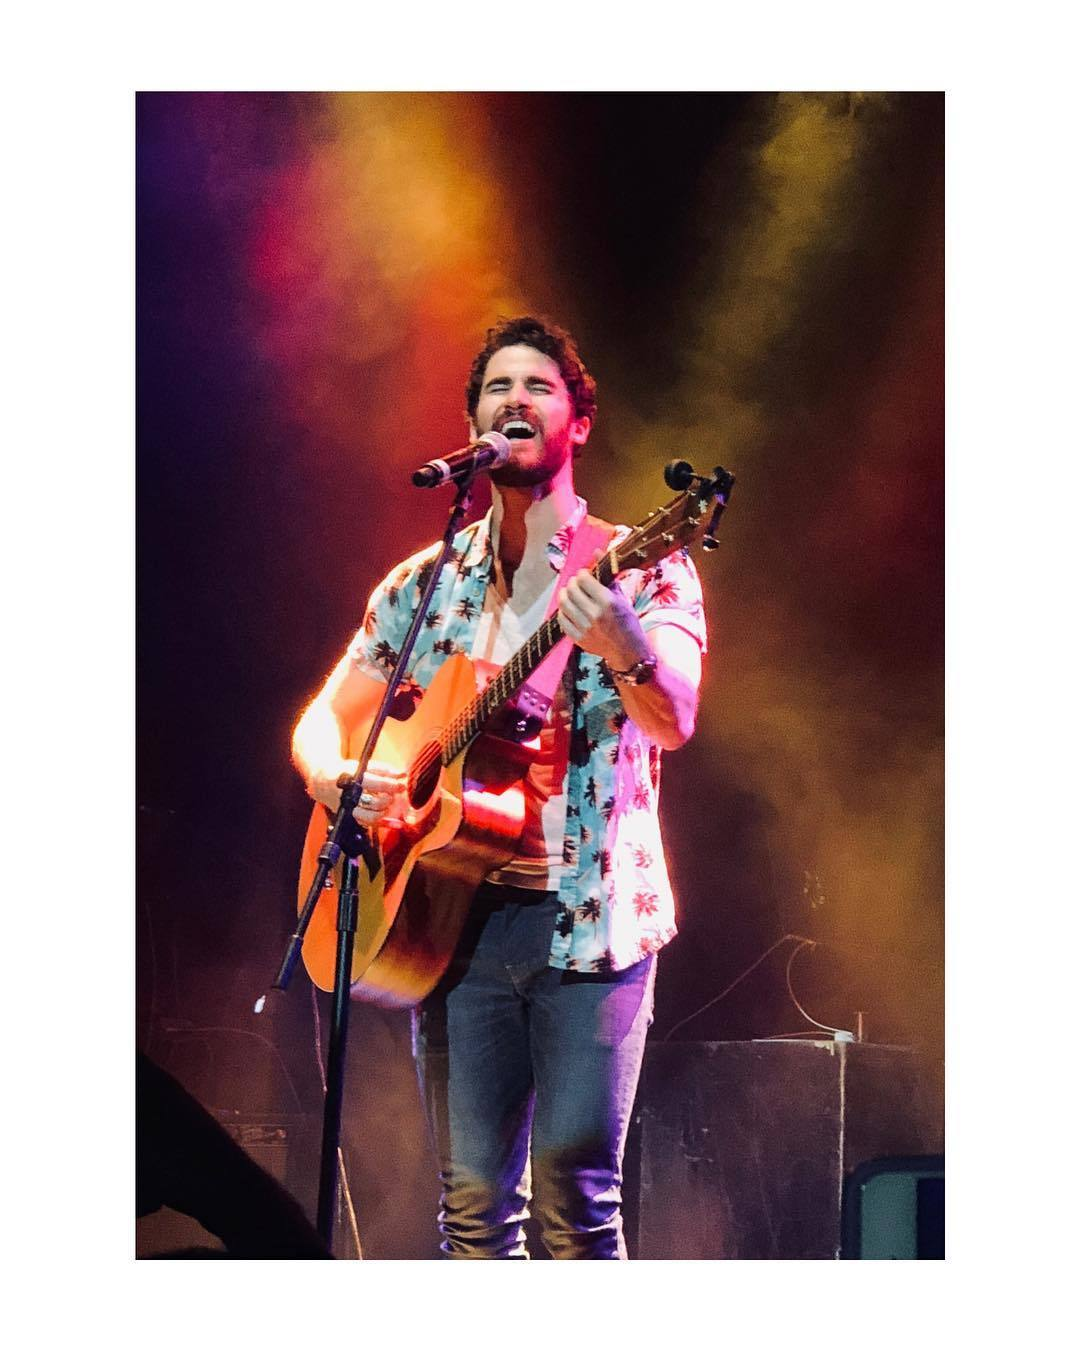 TeenageDream - Darren's Concerts and Other Musical Performancs for 2018 Tumblr_p6jdk90GiE1ubd9qxo1_1280